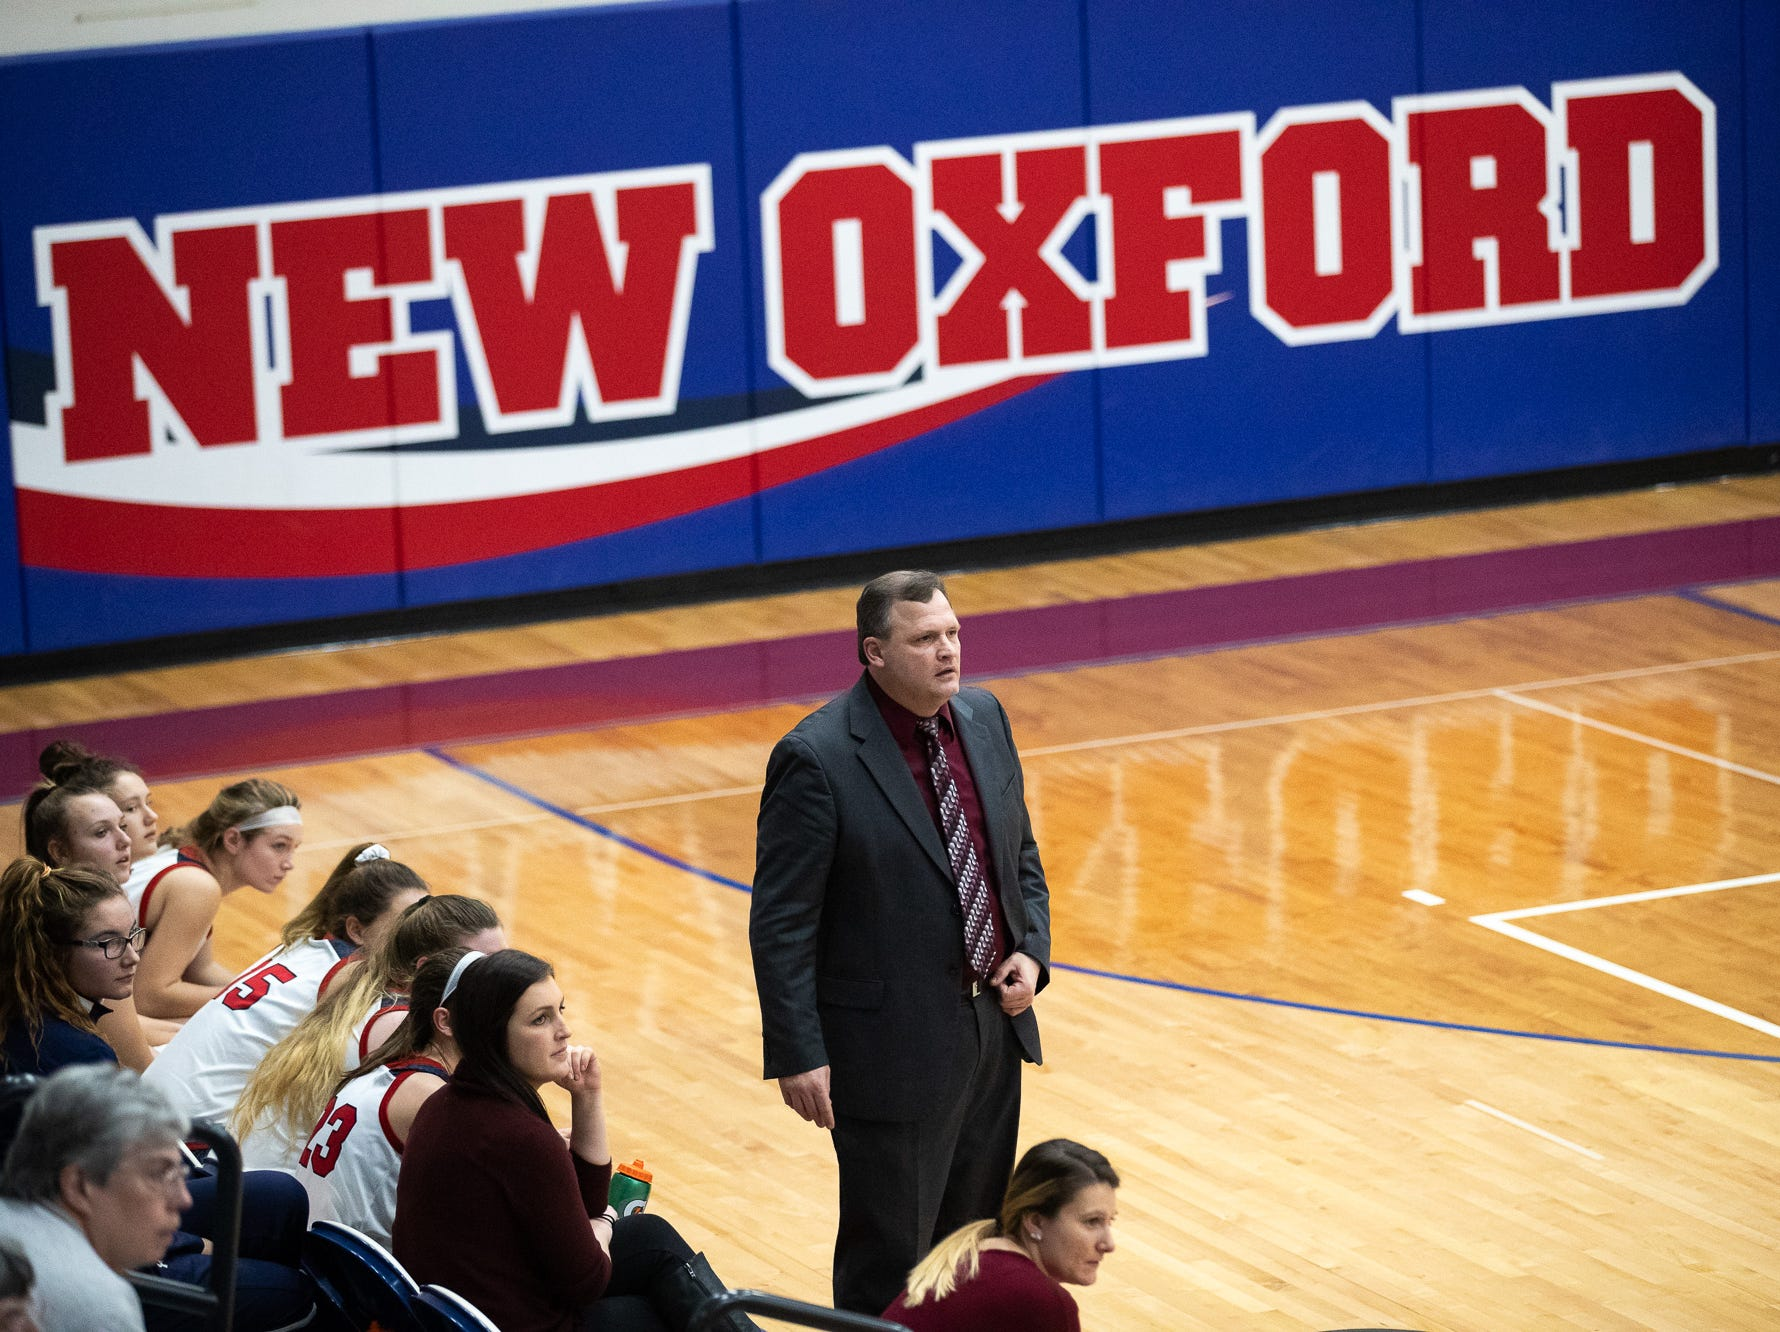 New Oxford coach Michael Englar looks on during the championship game between New Oxford and Gettysburg at the New Oxford Girls Basketball Tip-Off Tournament, Saturday, Dec. 8, 2018, in New Oxford. The Gettysburg Lady Warriors defeated the New Oxford Lady Colonials 47-40.